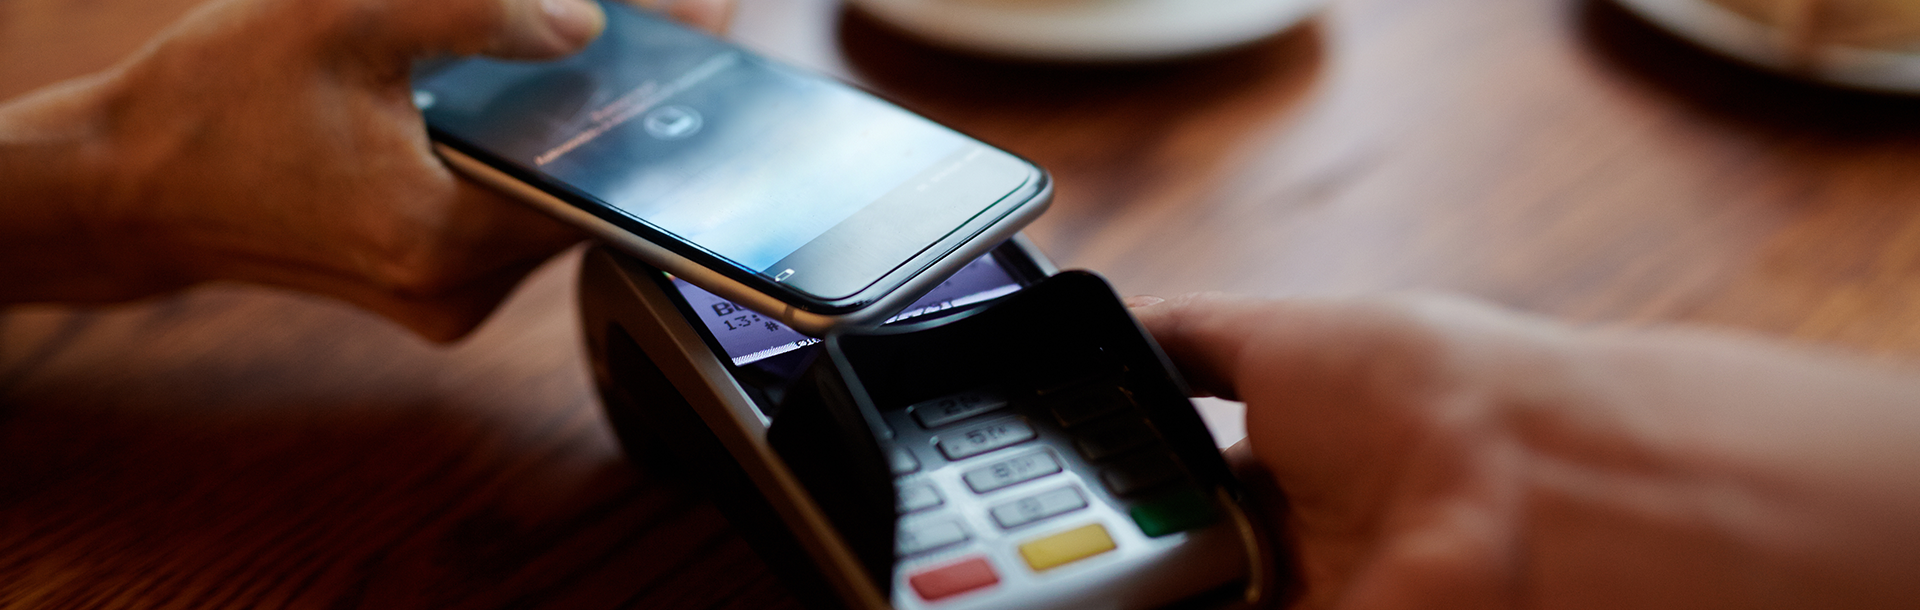 A customer uses their mobile phone to make a payment in a cafe